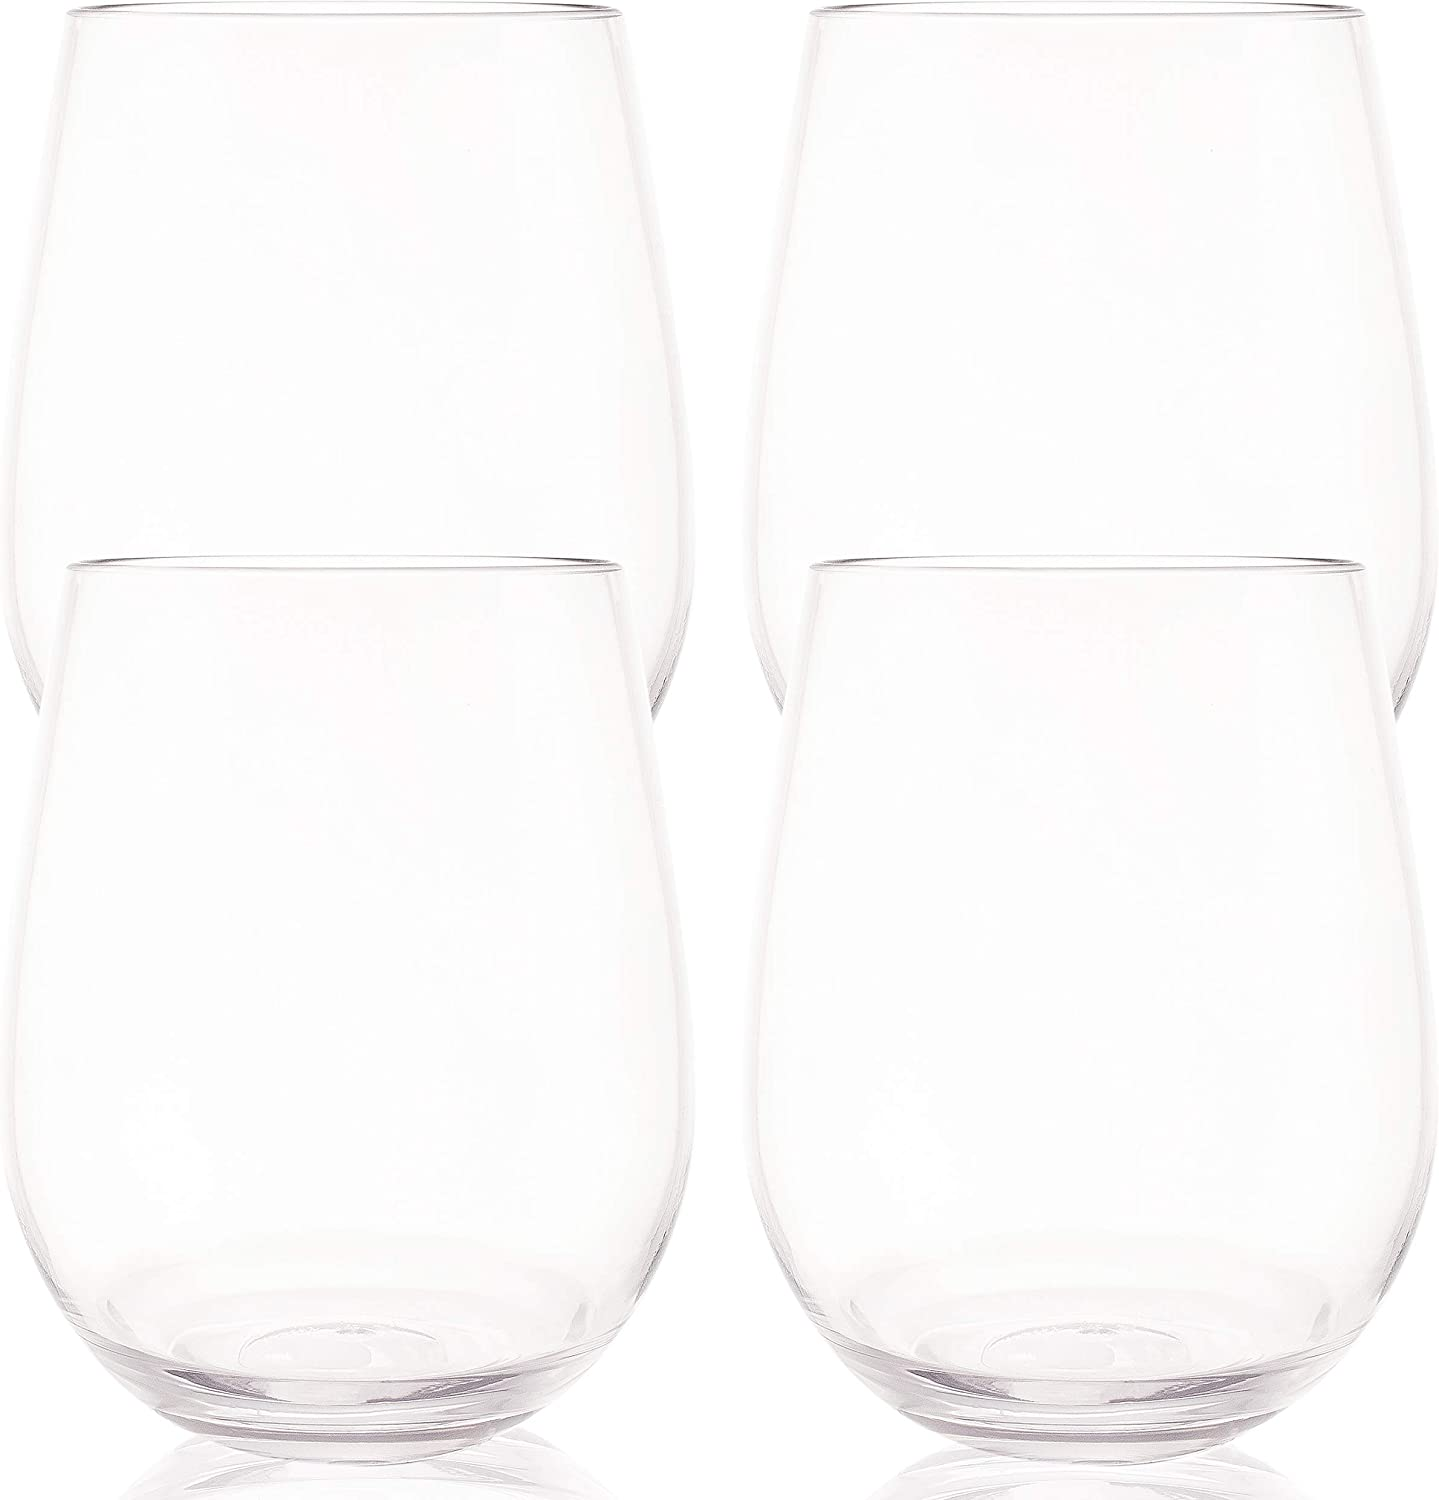 Unbreakable Stemless Wine Glasses, Dishwasher Safe Shatterproof Tritan Plastic Glassware, Perfect For Wine and Cocktails, Set of 4 16oz Cups